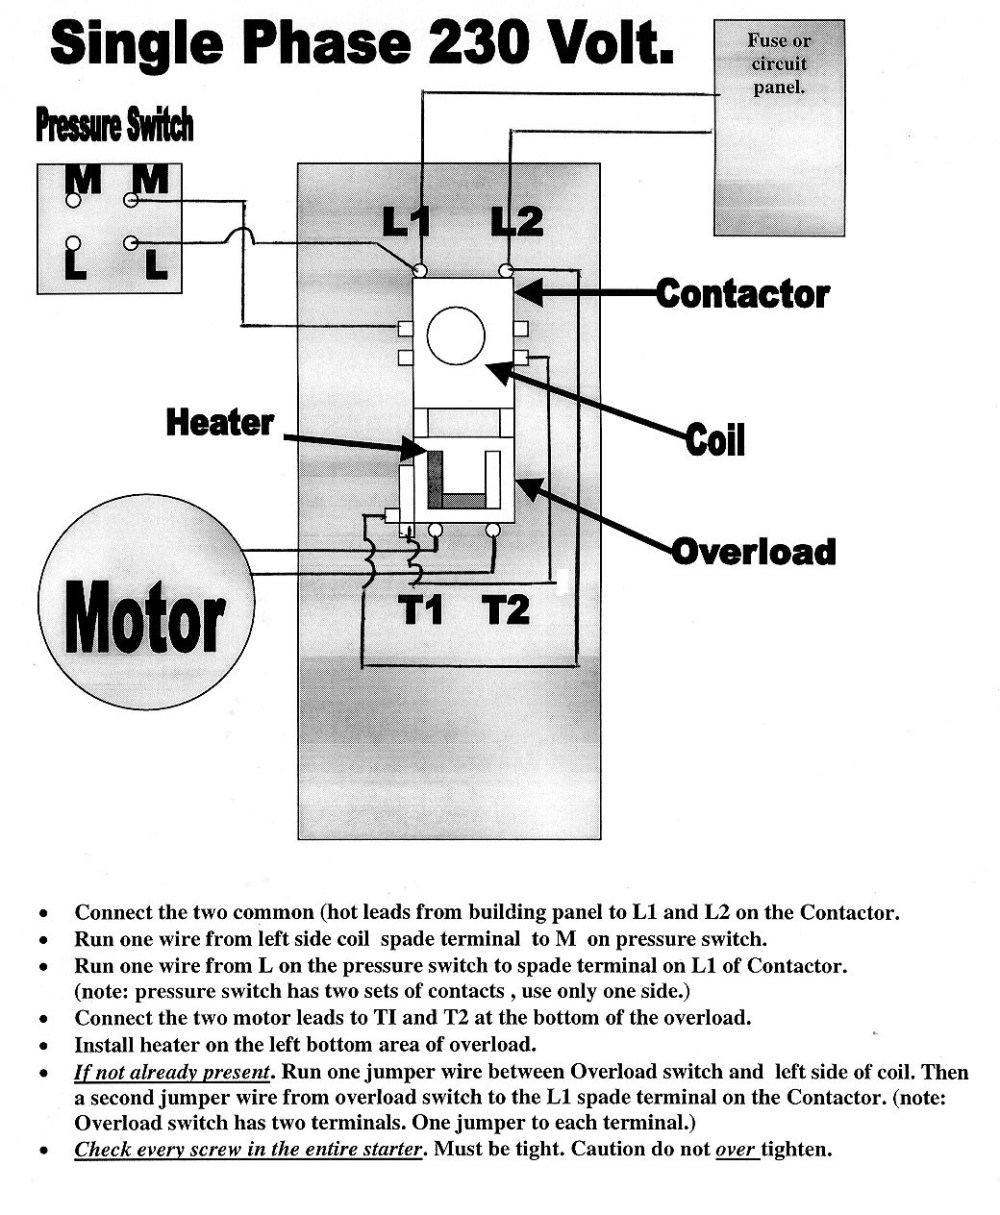 medium resolution of 1040x1264 electric motor wiring diagram single phase sketch wiring diagram electric motor sketch